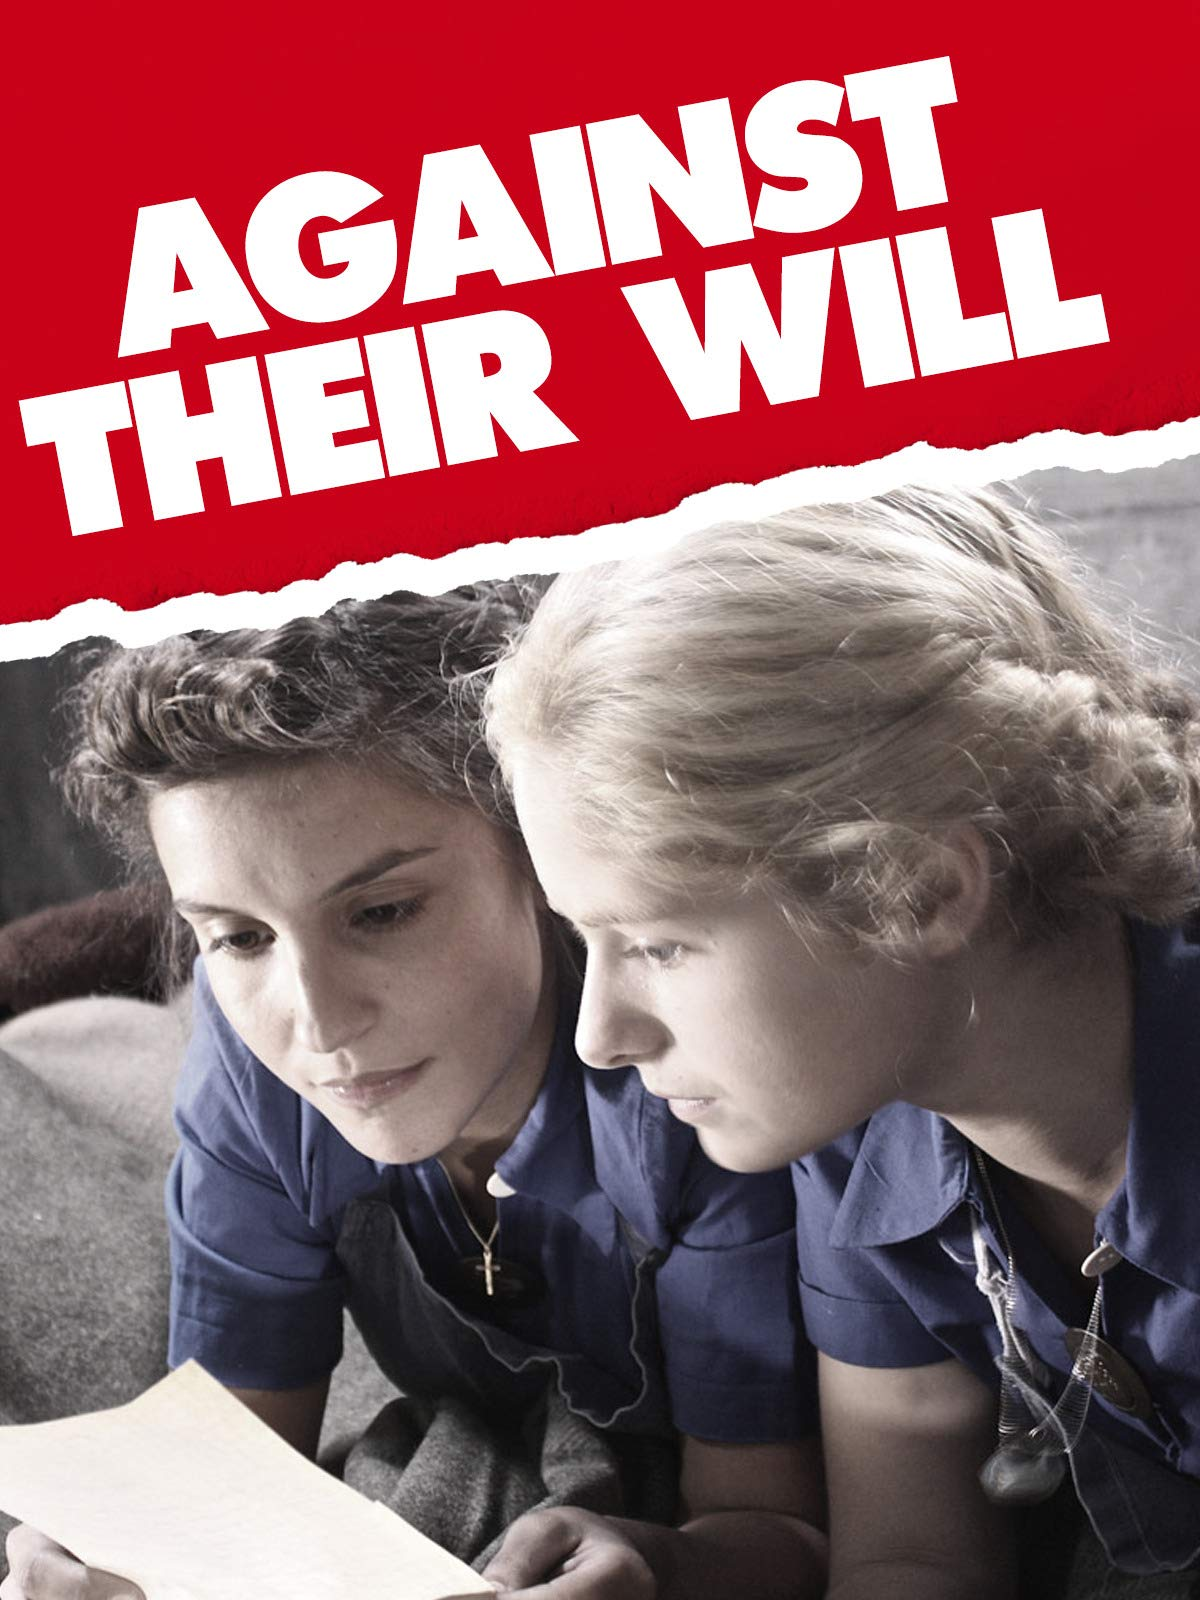 Against their will on Amazon Prime Video UK